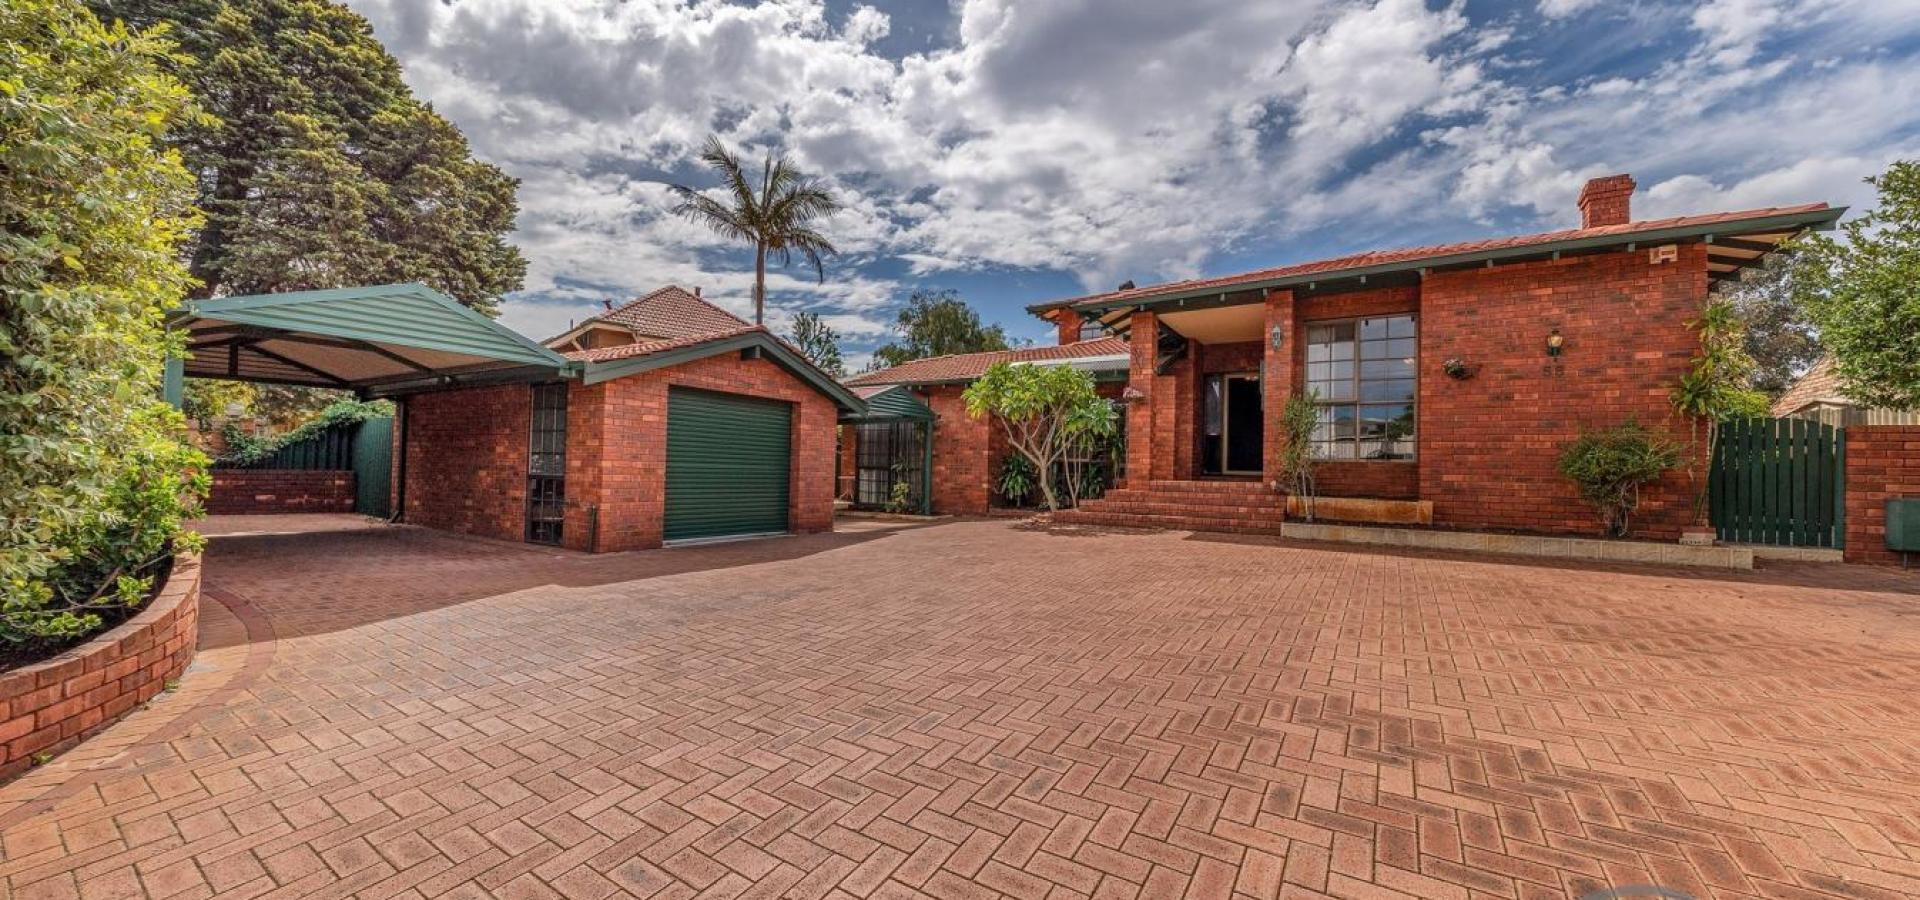 AMAZING RHSZ HOME ON 832 SQM BLOCK! (WITH VIRTUAL TOUR)